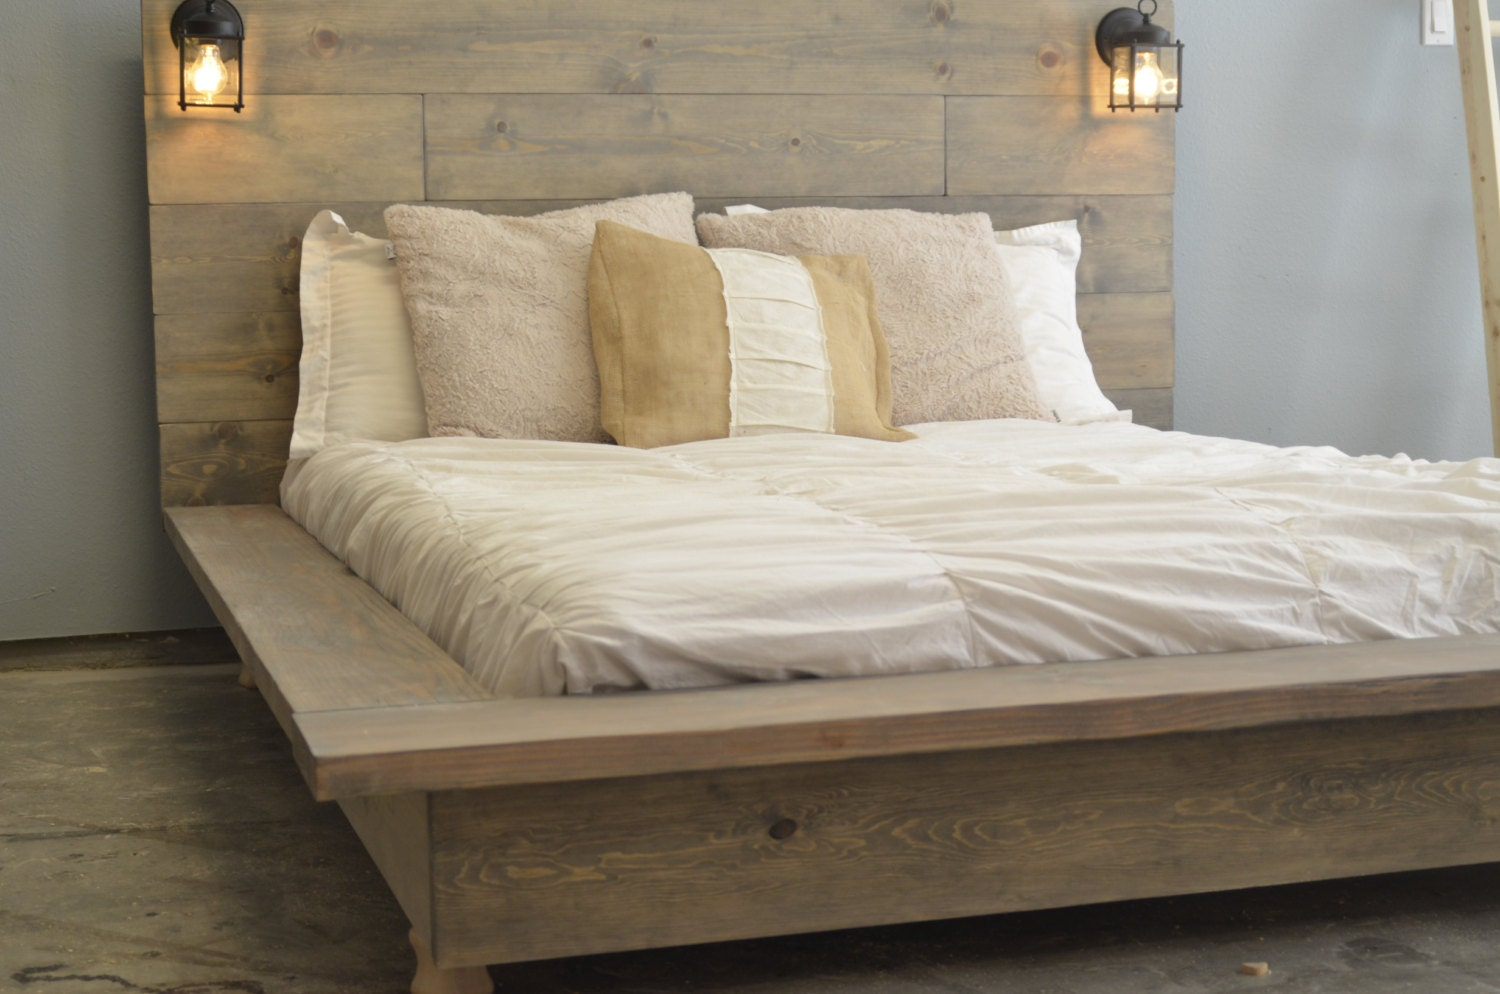 floating wood platform bed frame with lighted headboard quilmes zoom